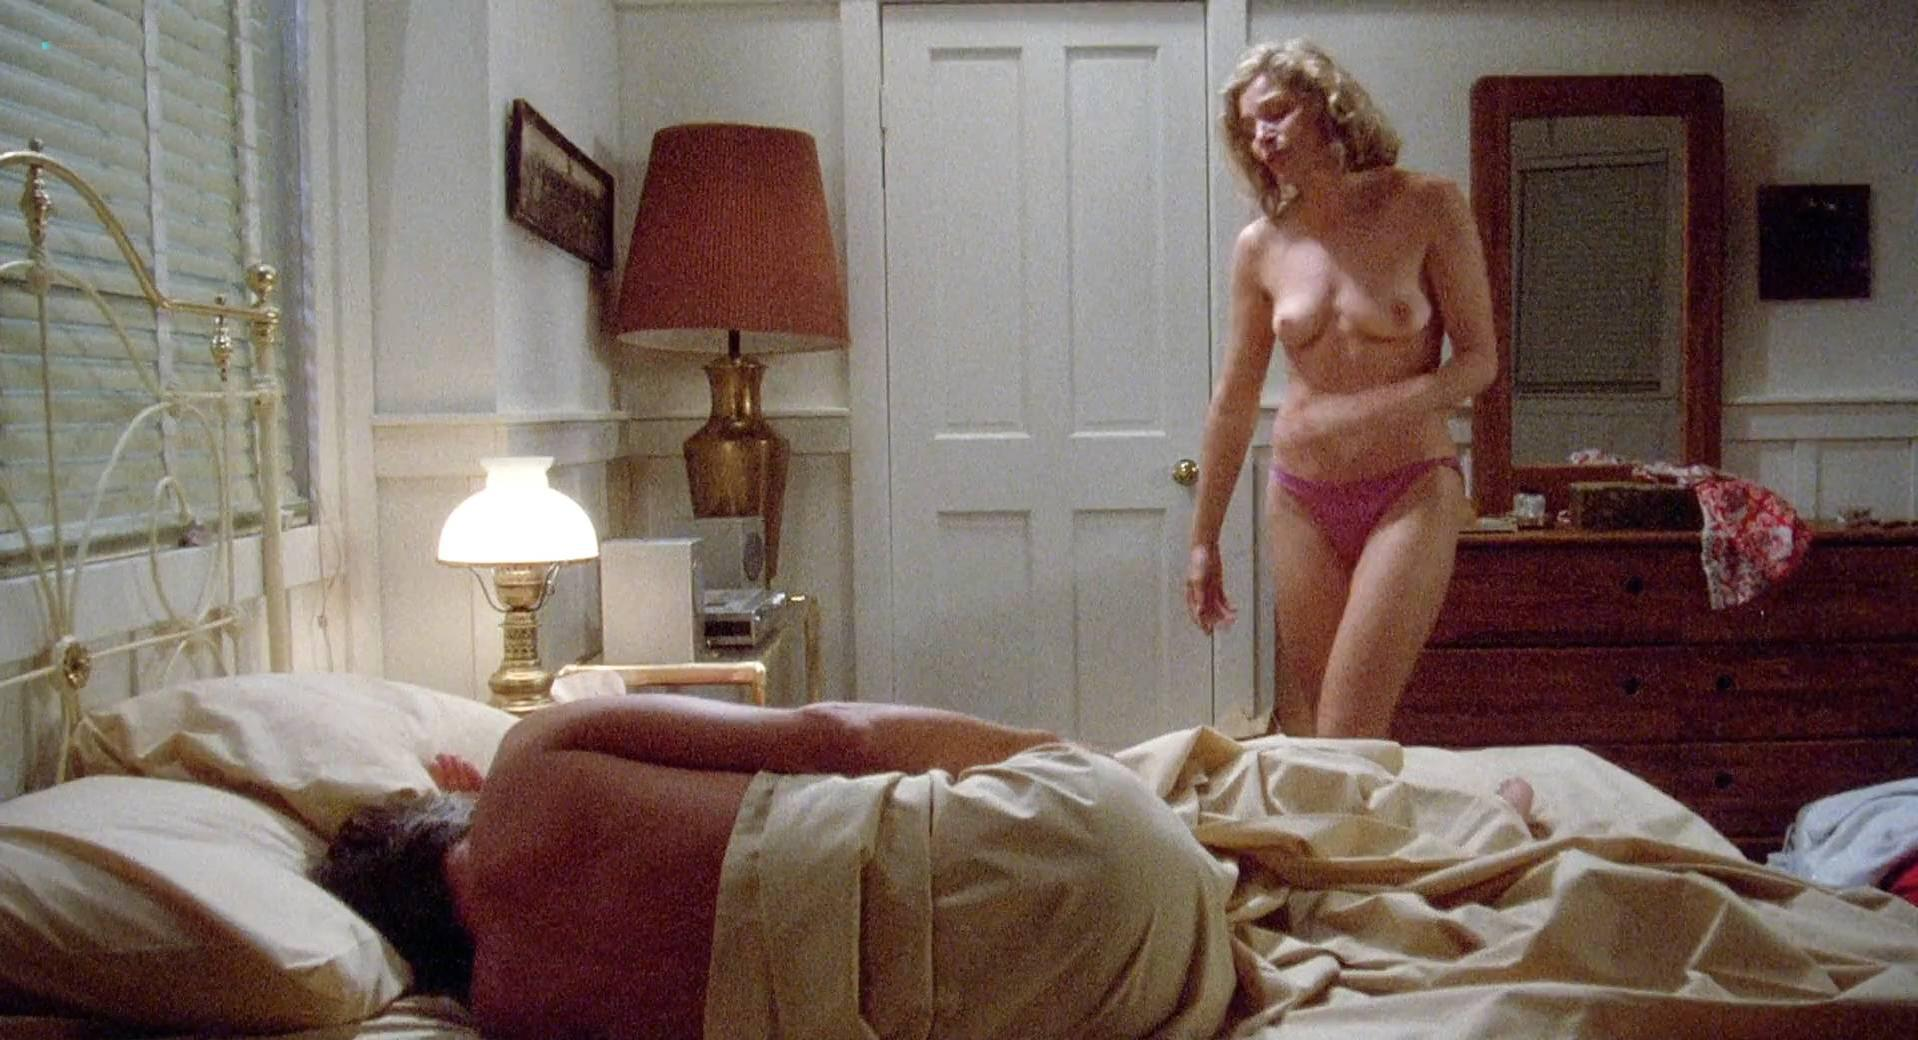 Helen Shaver nude, Ann Dusenberry nude, Marilyn Jones nude, Jennifer Jason Leigh nude - The Men's Club (1986)